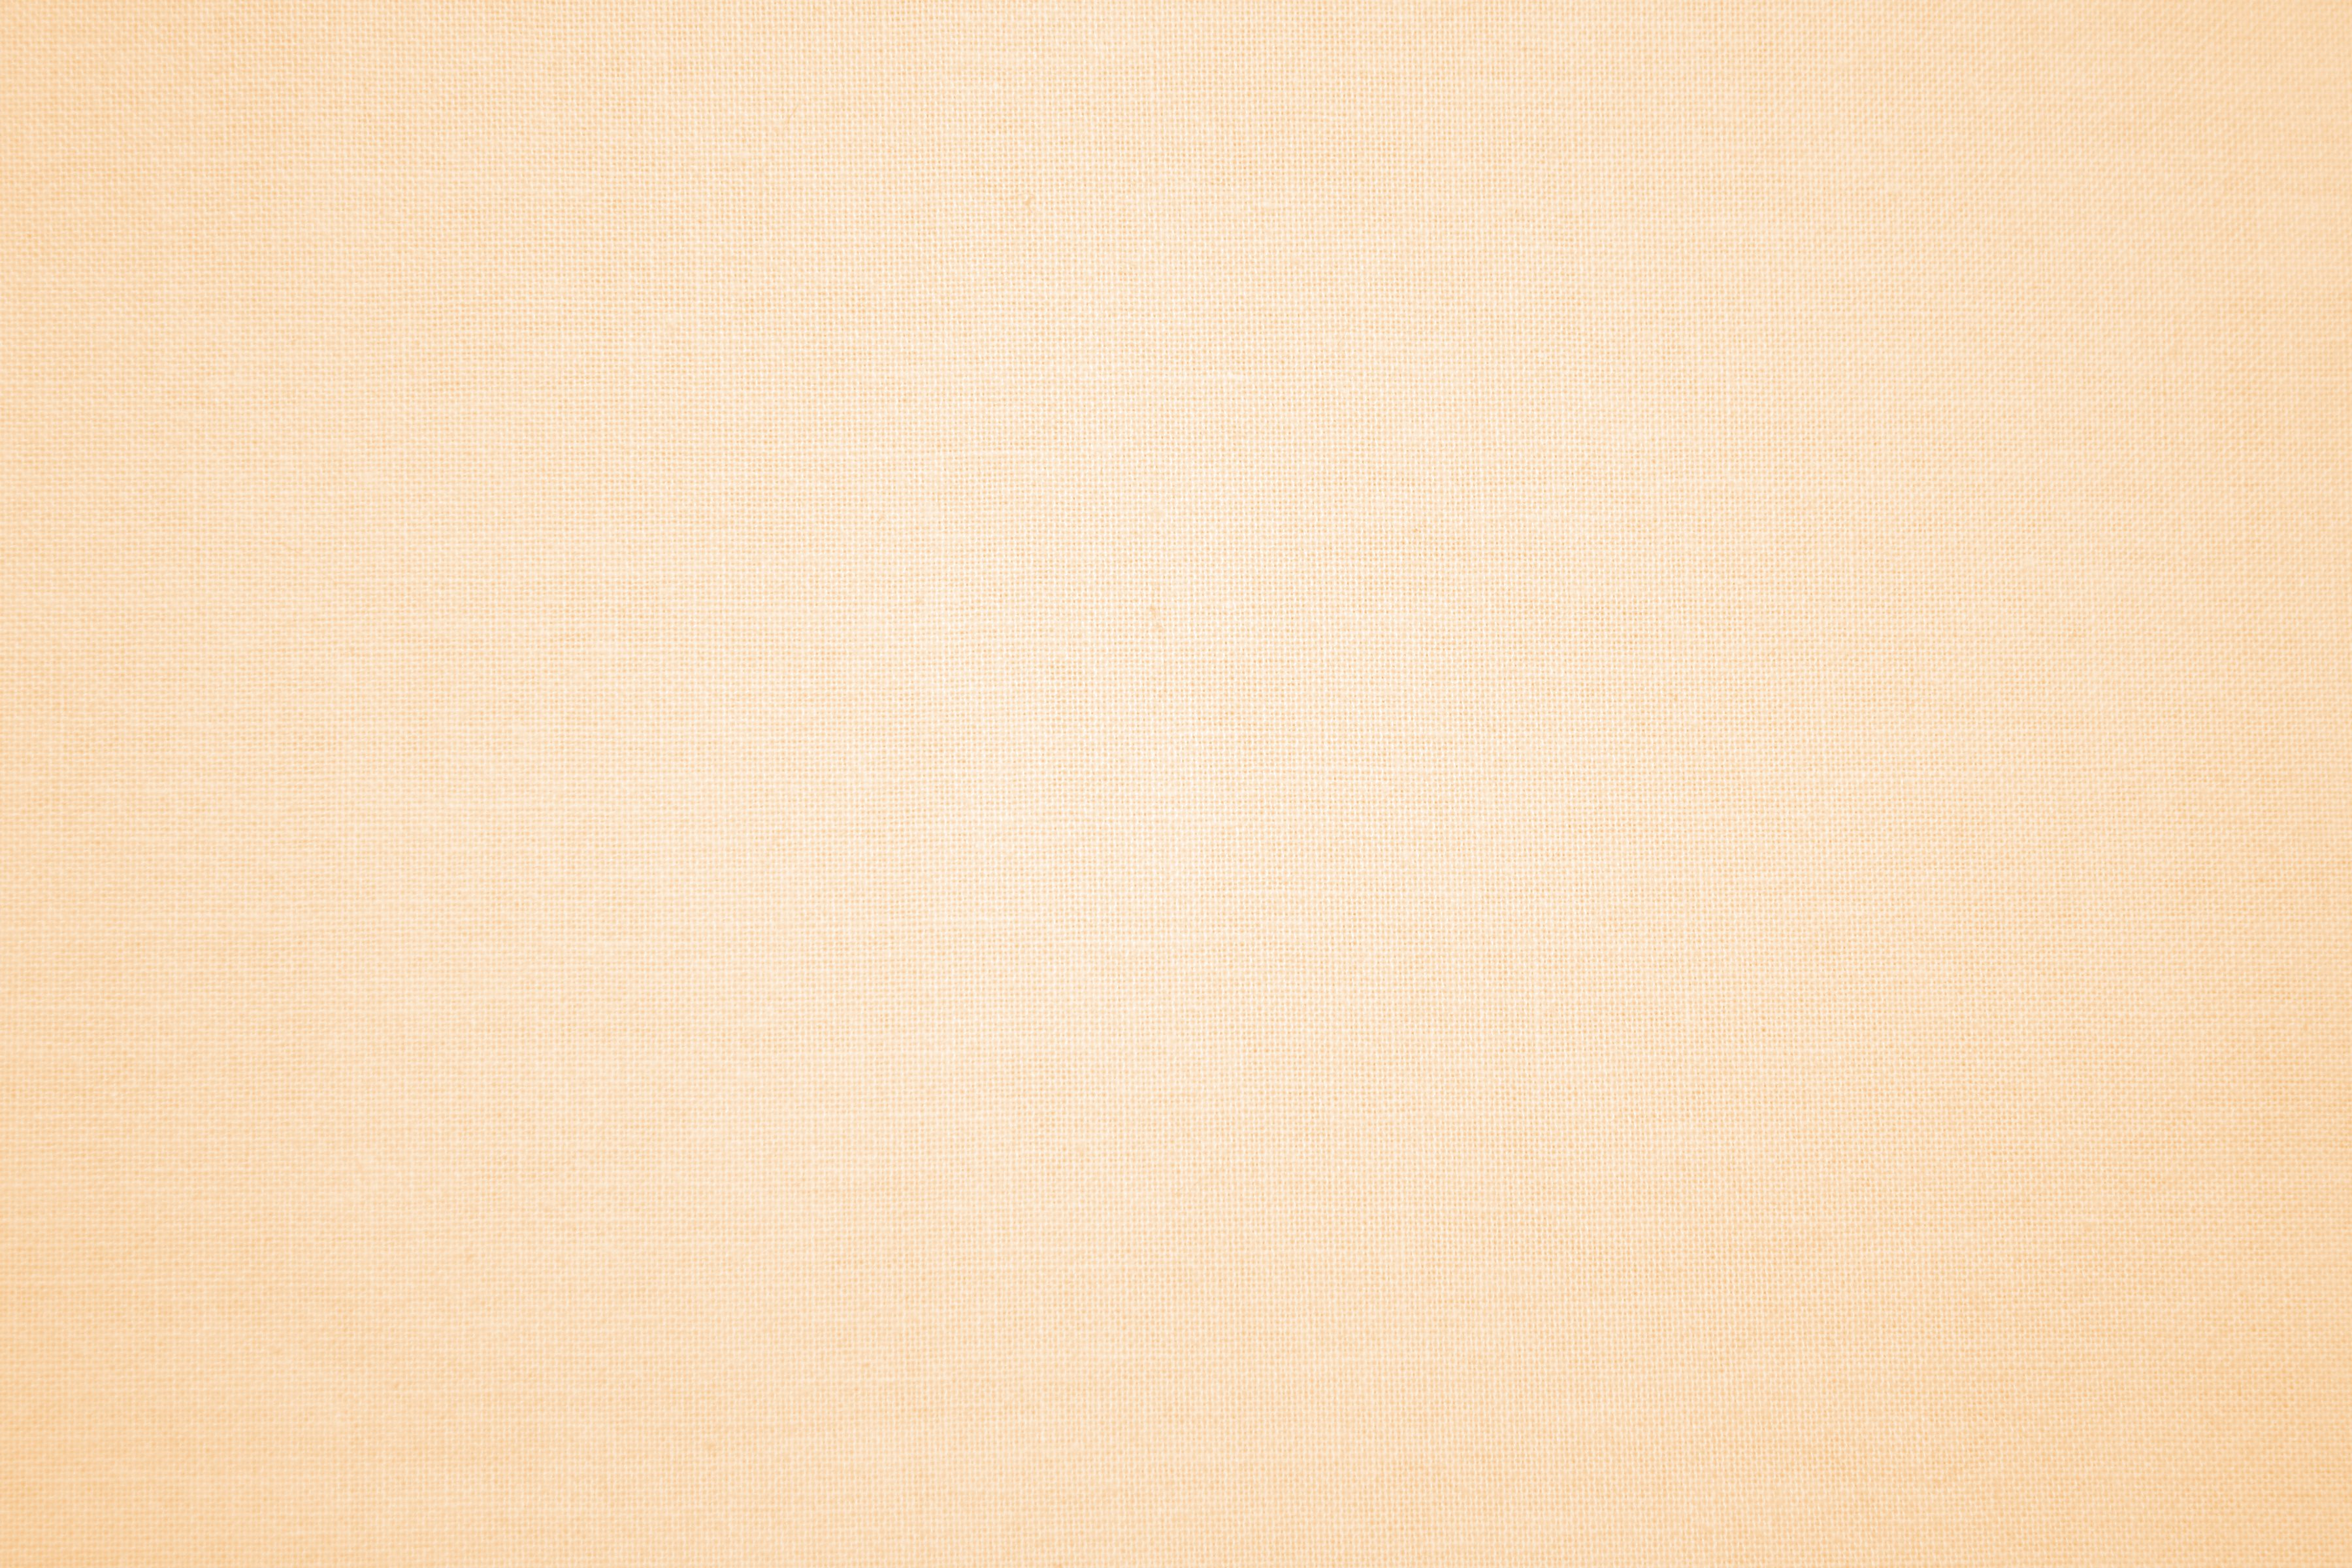 Peach Colored Canvas Fabric Texture Picture Photograph Photos 3600x2400